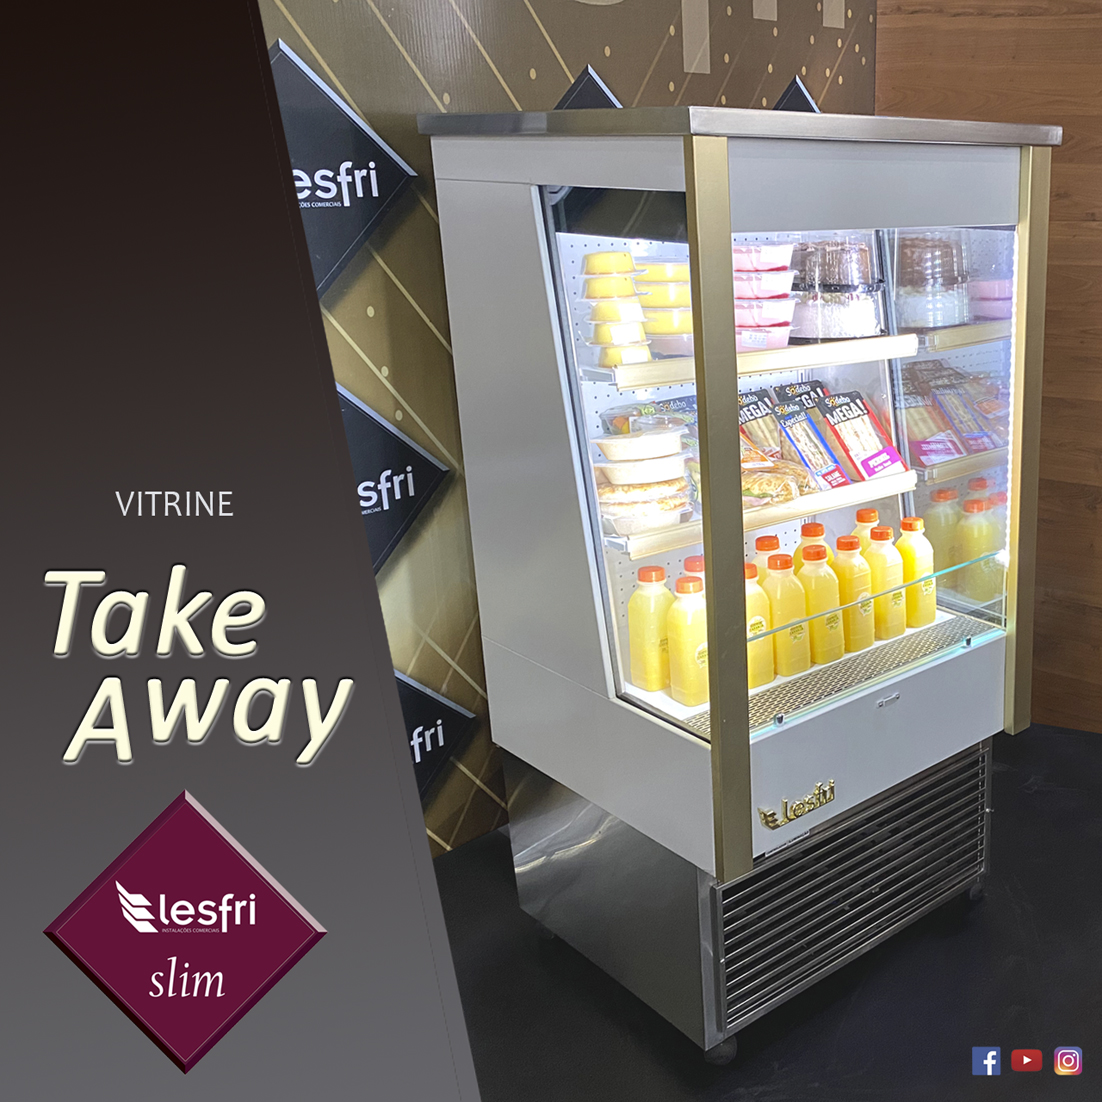 Arte Vitrine Take Away (para interno do